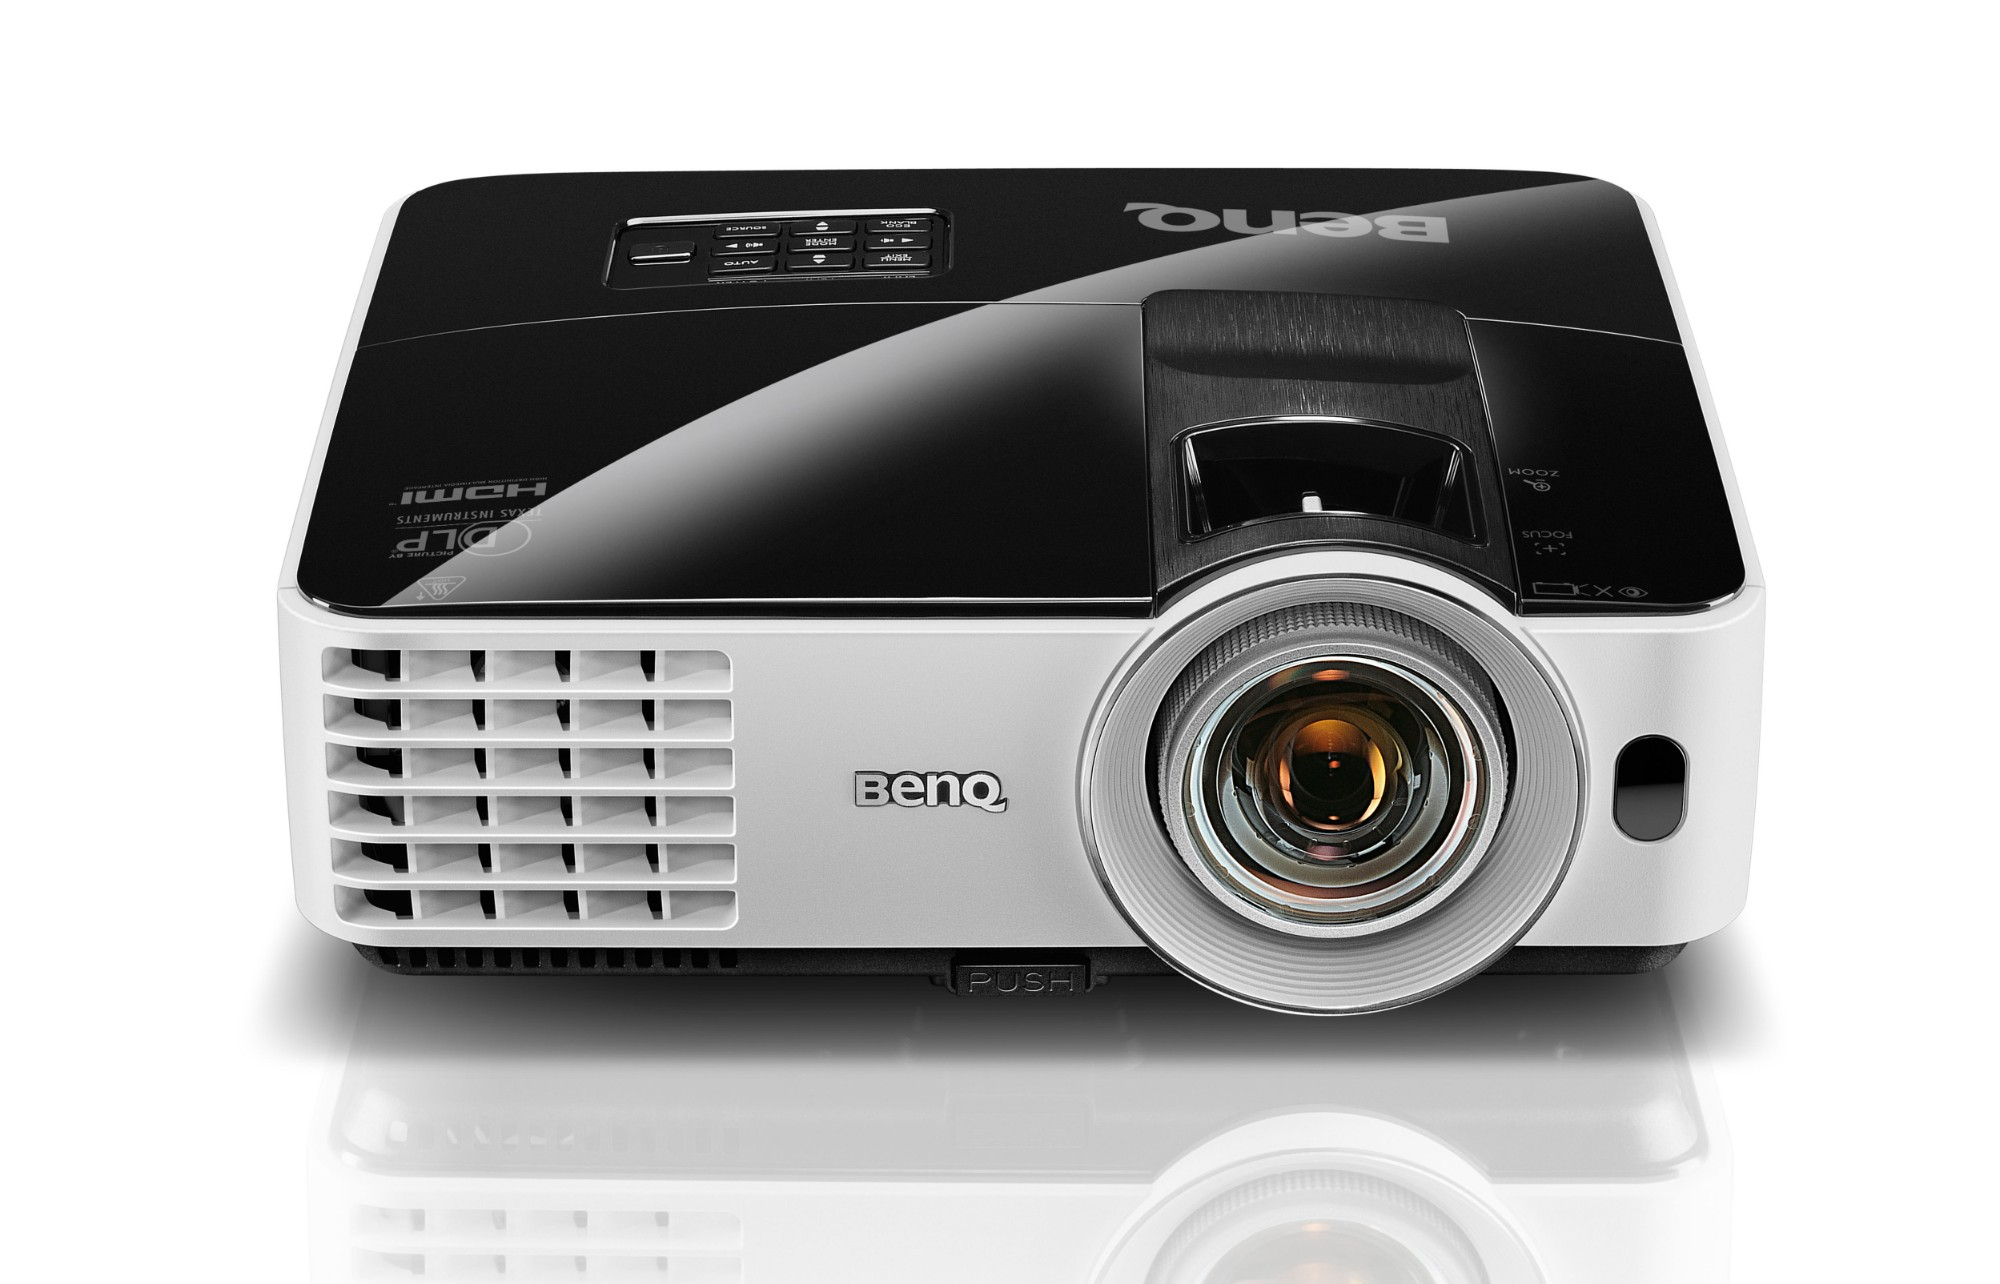 Benq MX631ST data projector 3200 ANSI lumens DLP XGA (1024x768) 3D Desktop projector Black,White